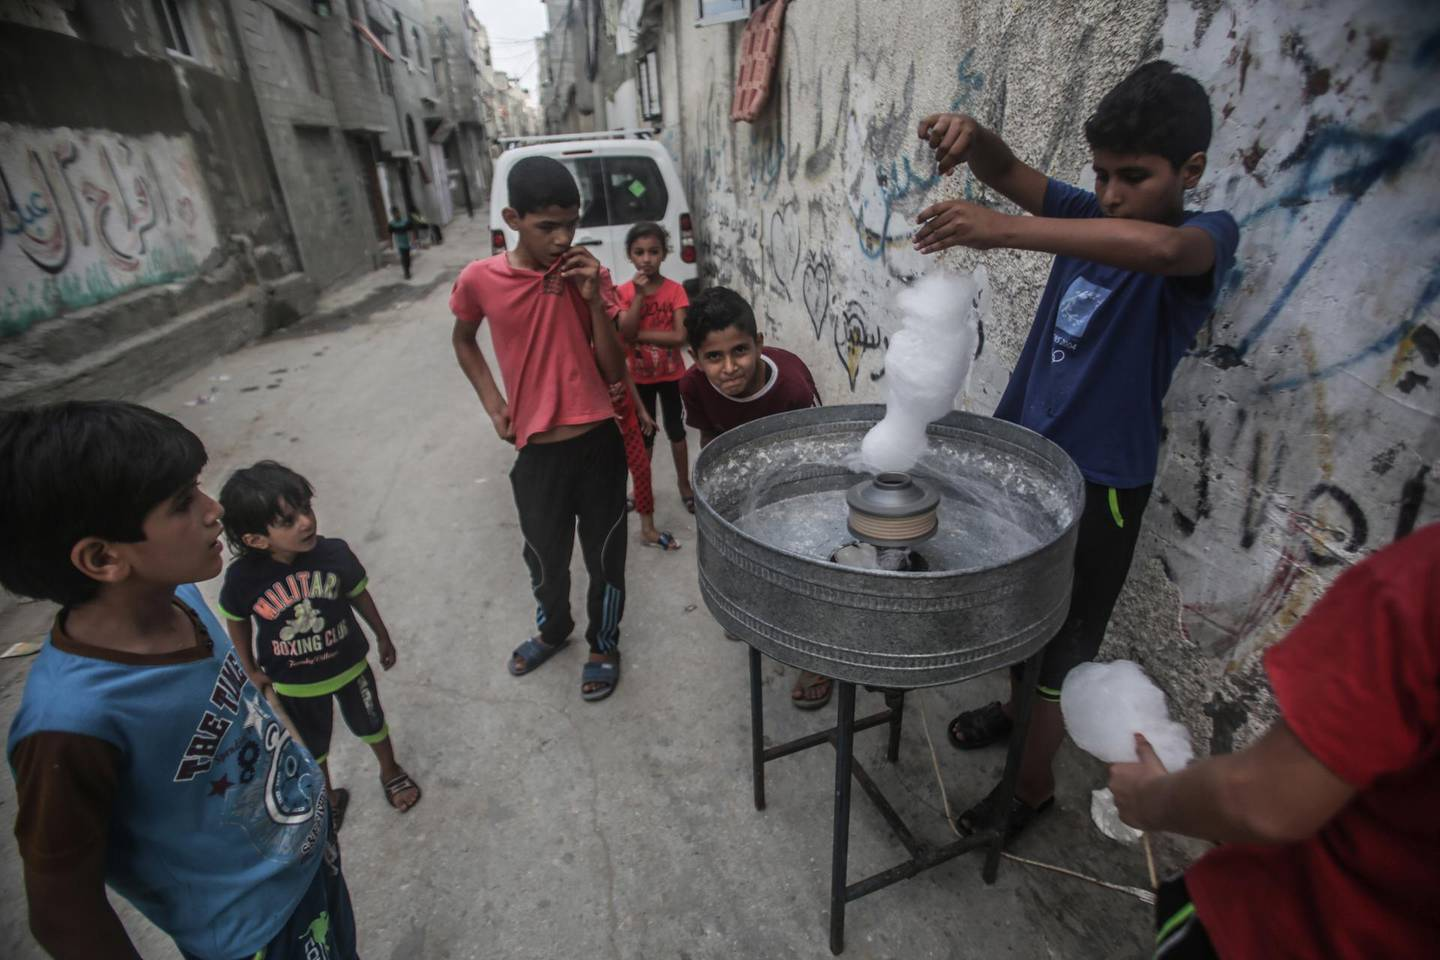 epa06991149 Palestinians refugees making candy floss in the Shateaa refugee camp in the north west Gaza City, 01 September 2018. According to media reports on 31 August 2018, the United States has ended all funding to the United Nations Relief and Works Agency for Palestine Refugees in the Near East (UNRWA). 'The administration has carefully reviewed the issue and determined that the United States will not make additional contributions to UNRWA' according to a statement by the US State Department.  EPA/HAITHAM IMAD